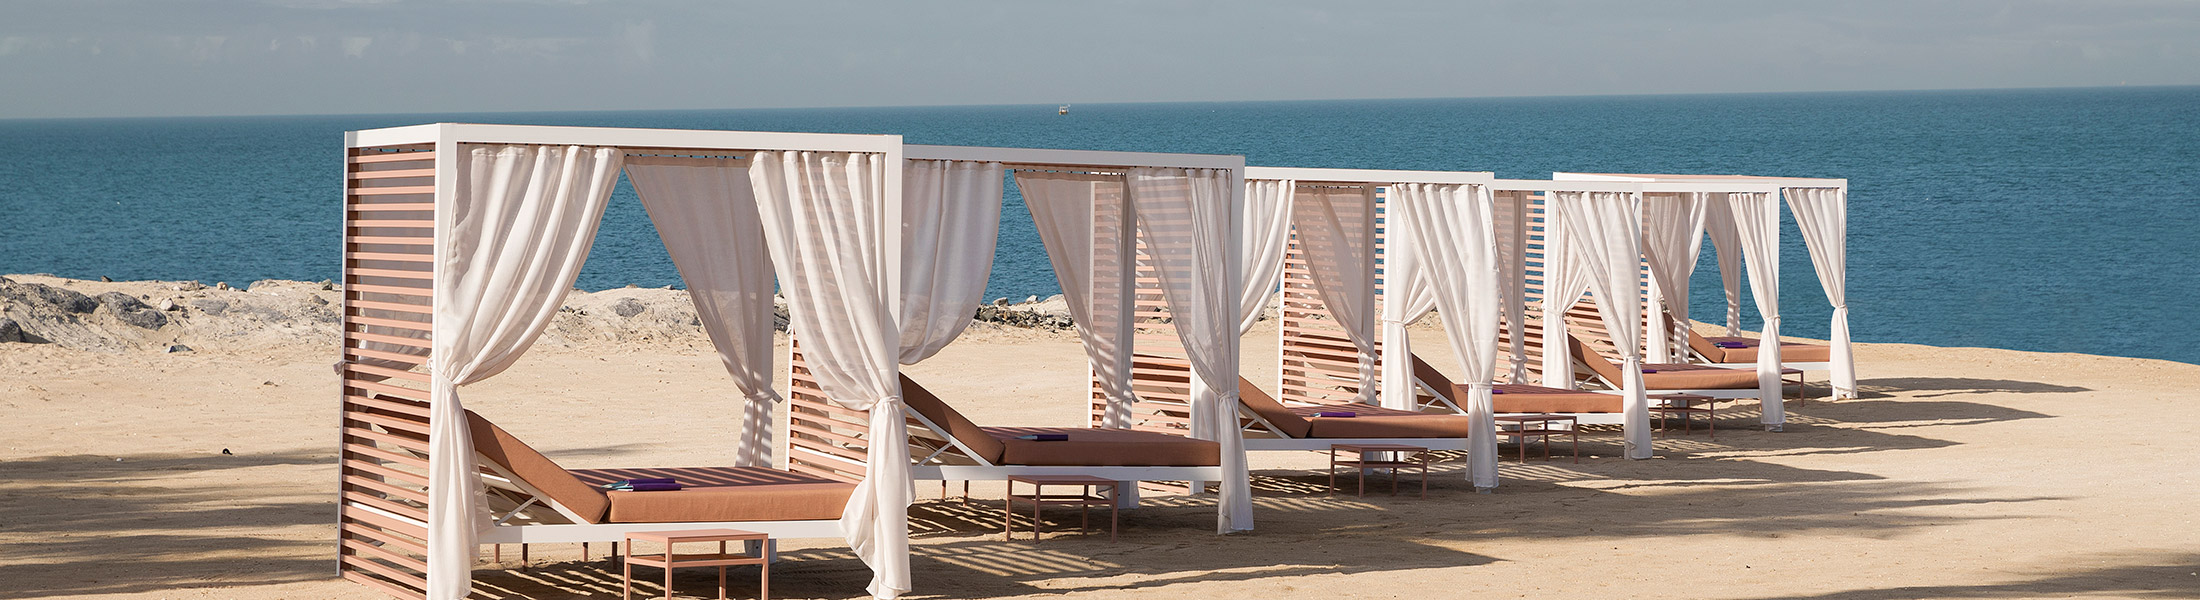 Beach cabanas at Caesars Palace Bluewaters